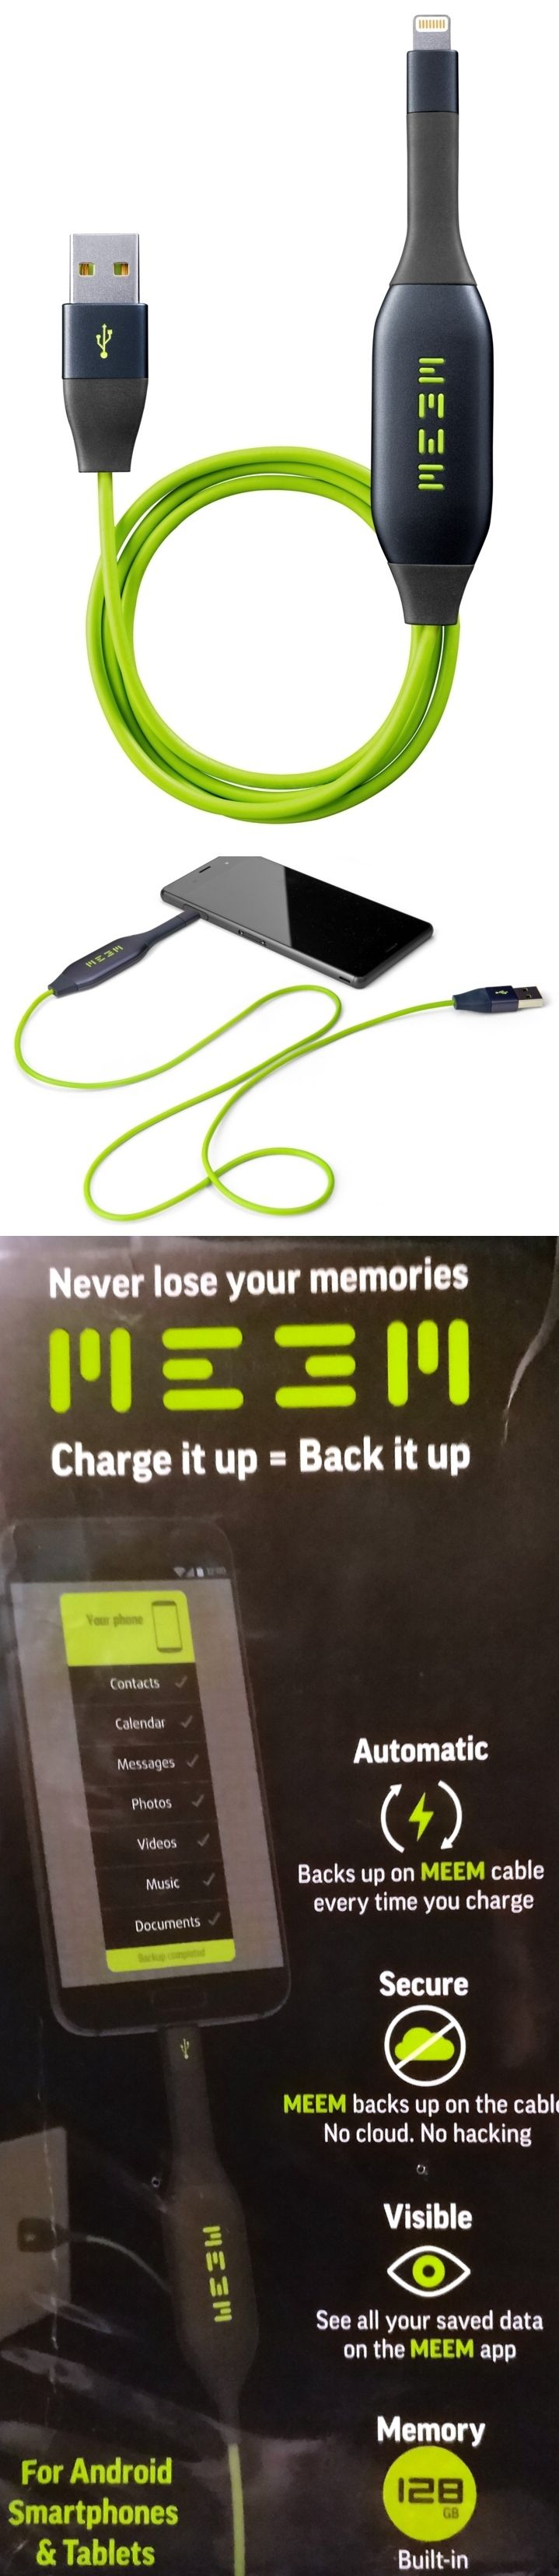 Phone packed with holiday photos? The MEEM phone charger